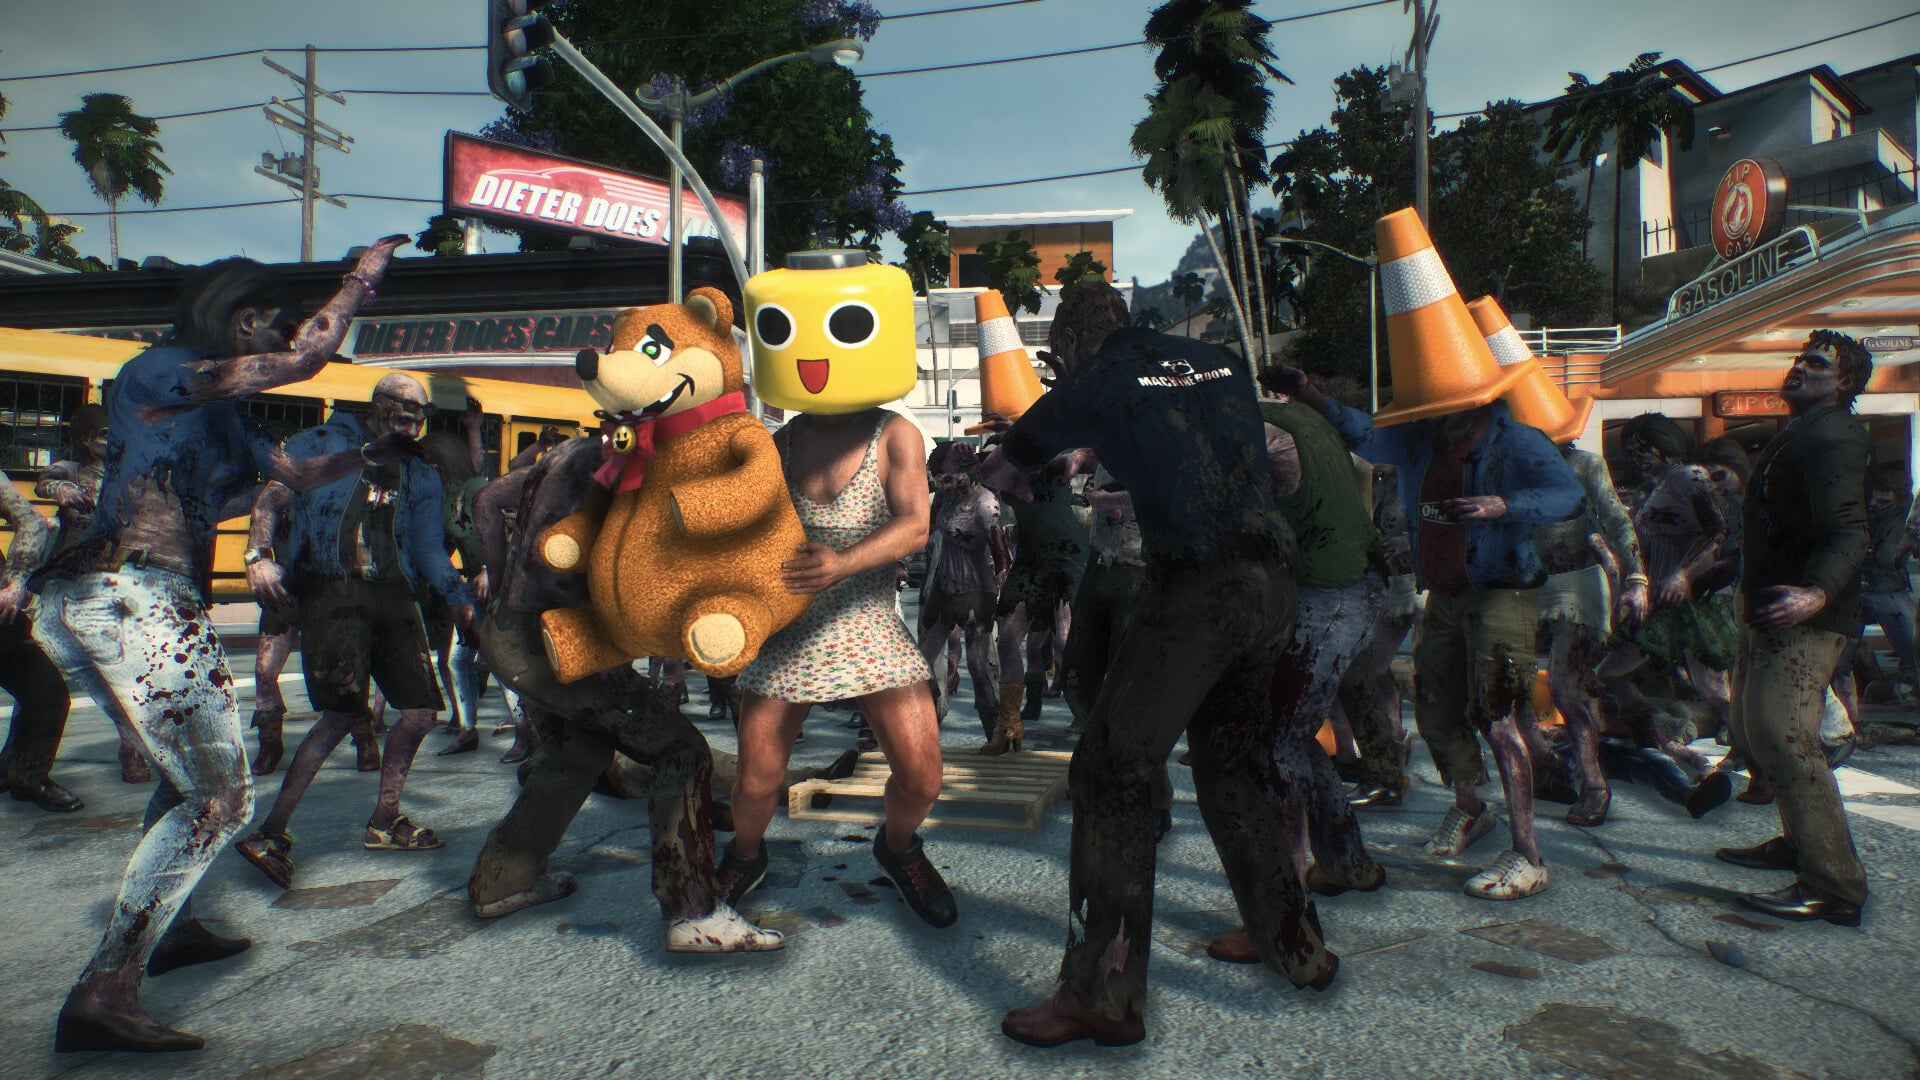 Dead Rising is a fun and atypical zombie game which allows for all kinds of shenanigans